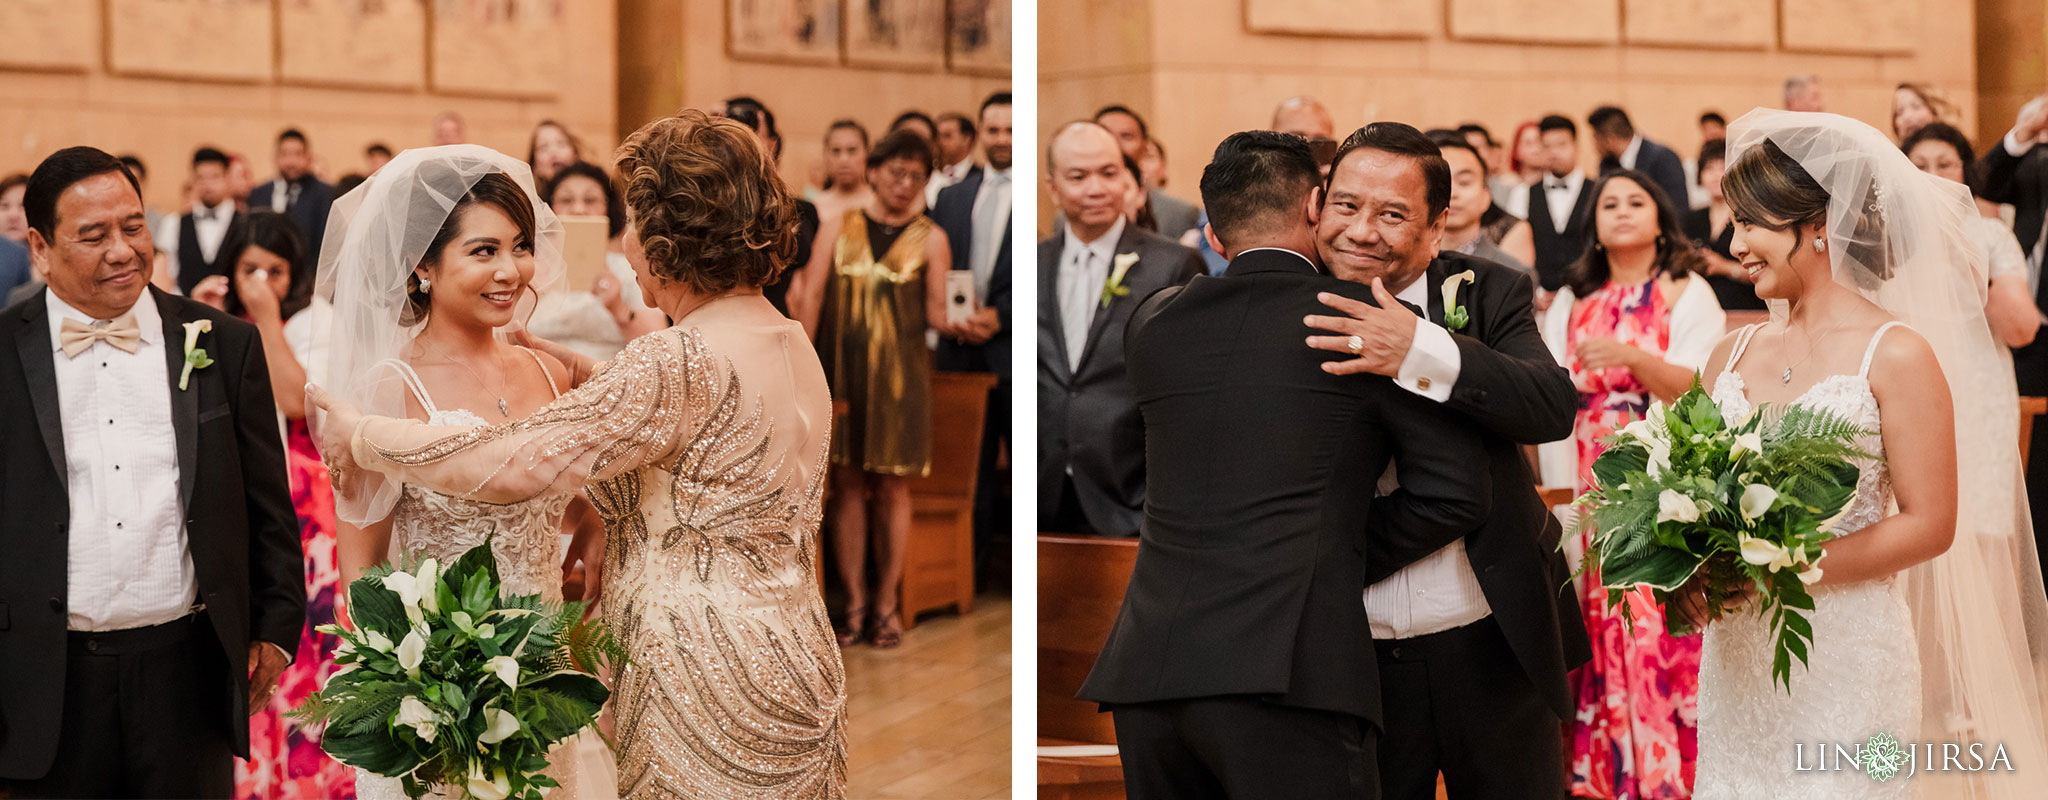 022 cathedral of our lady of angels los angeles wedding ceremony photography